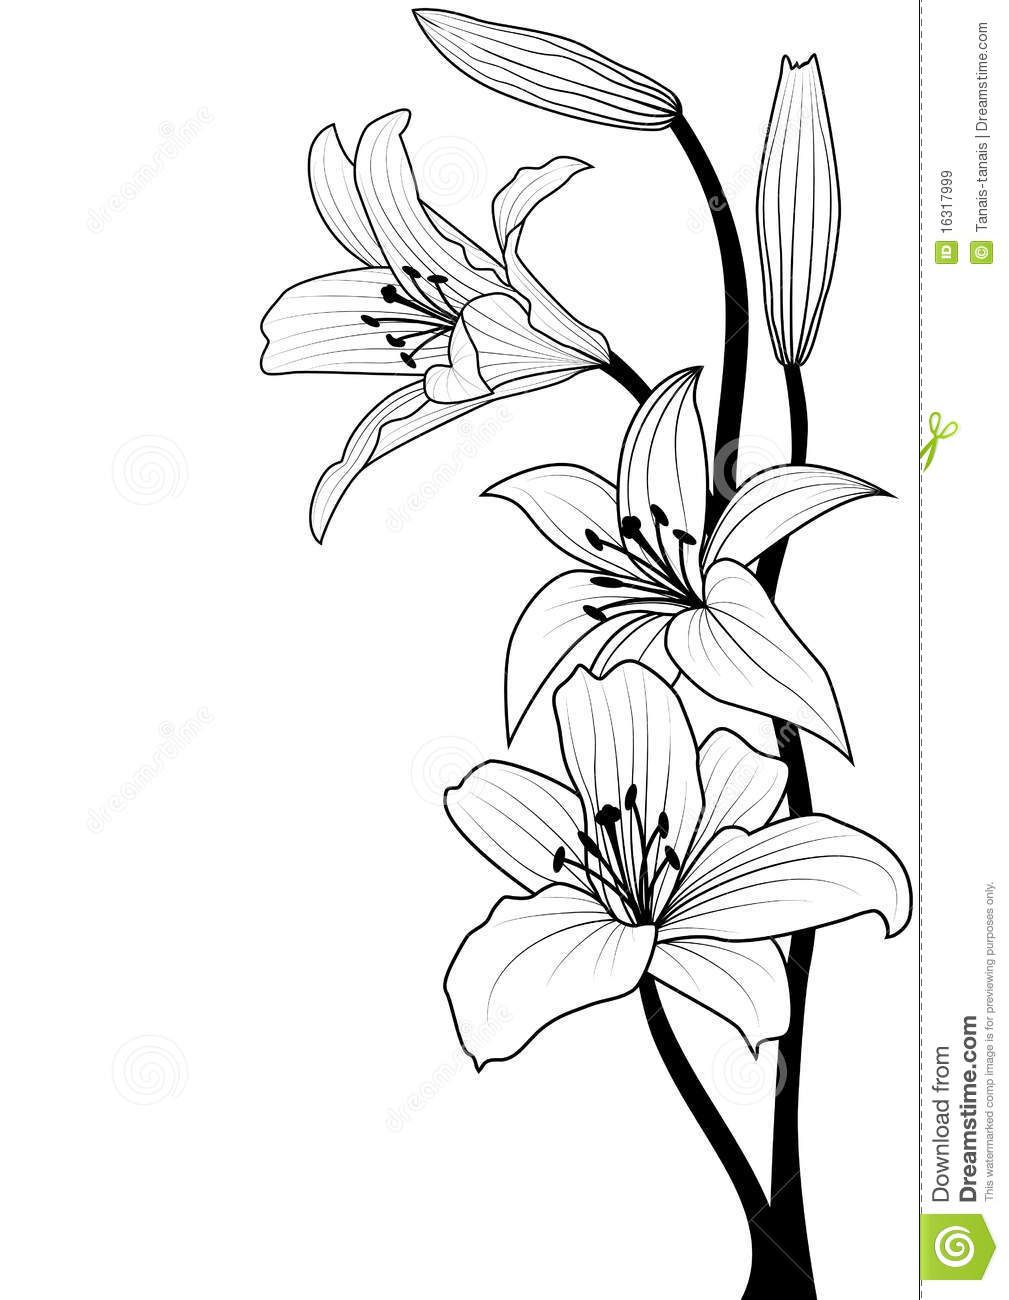 Lily - Download From Over 58 Million High Quality Stock ...